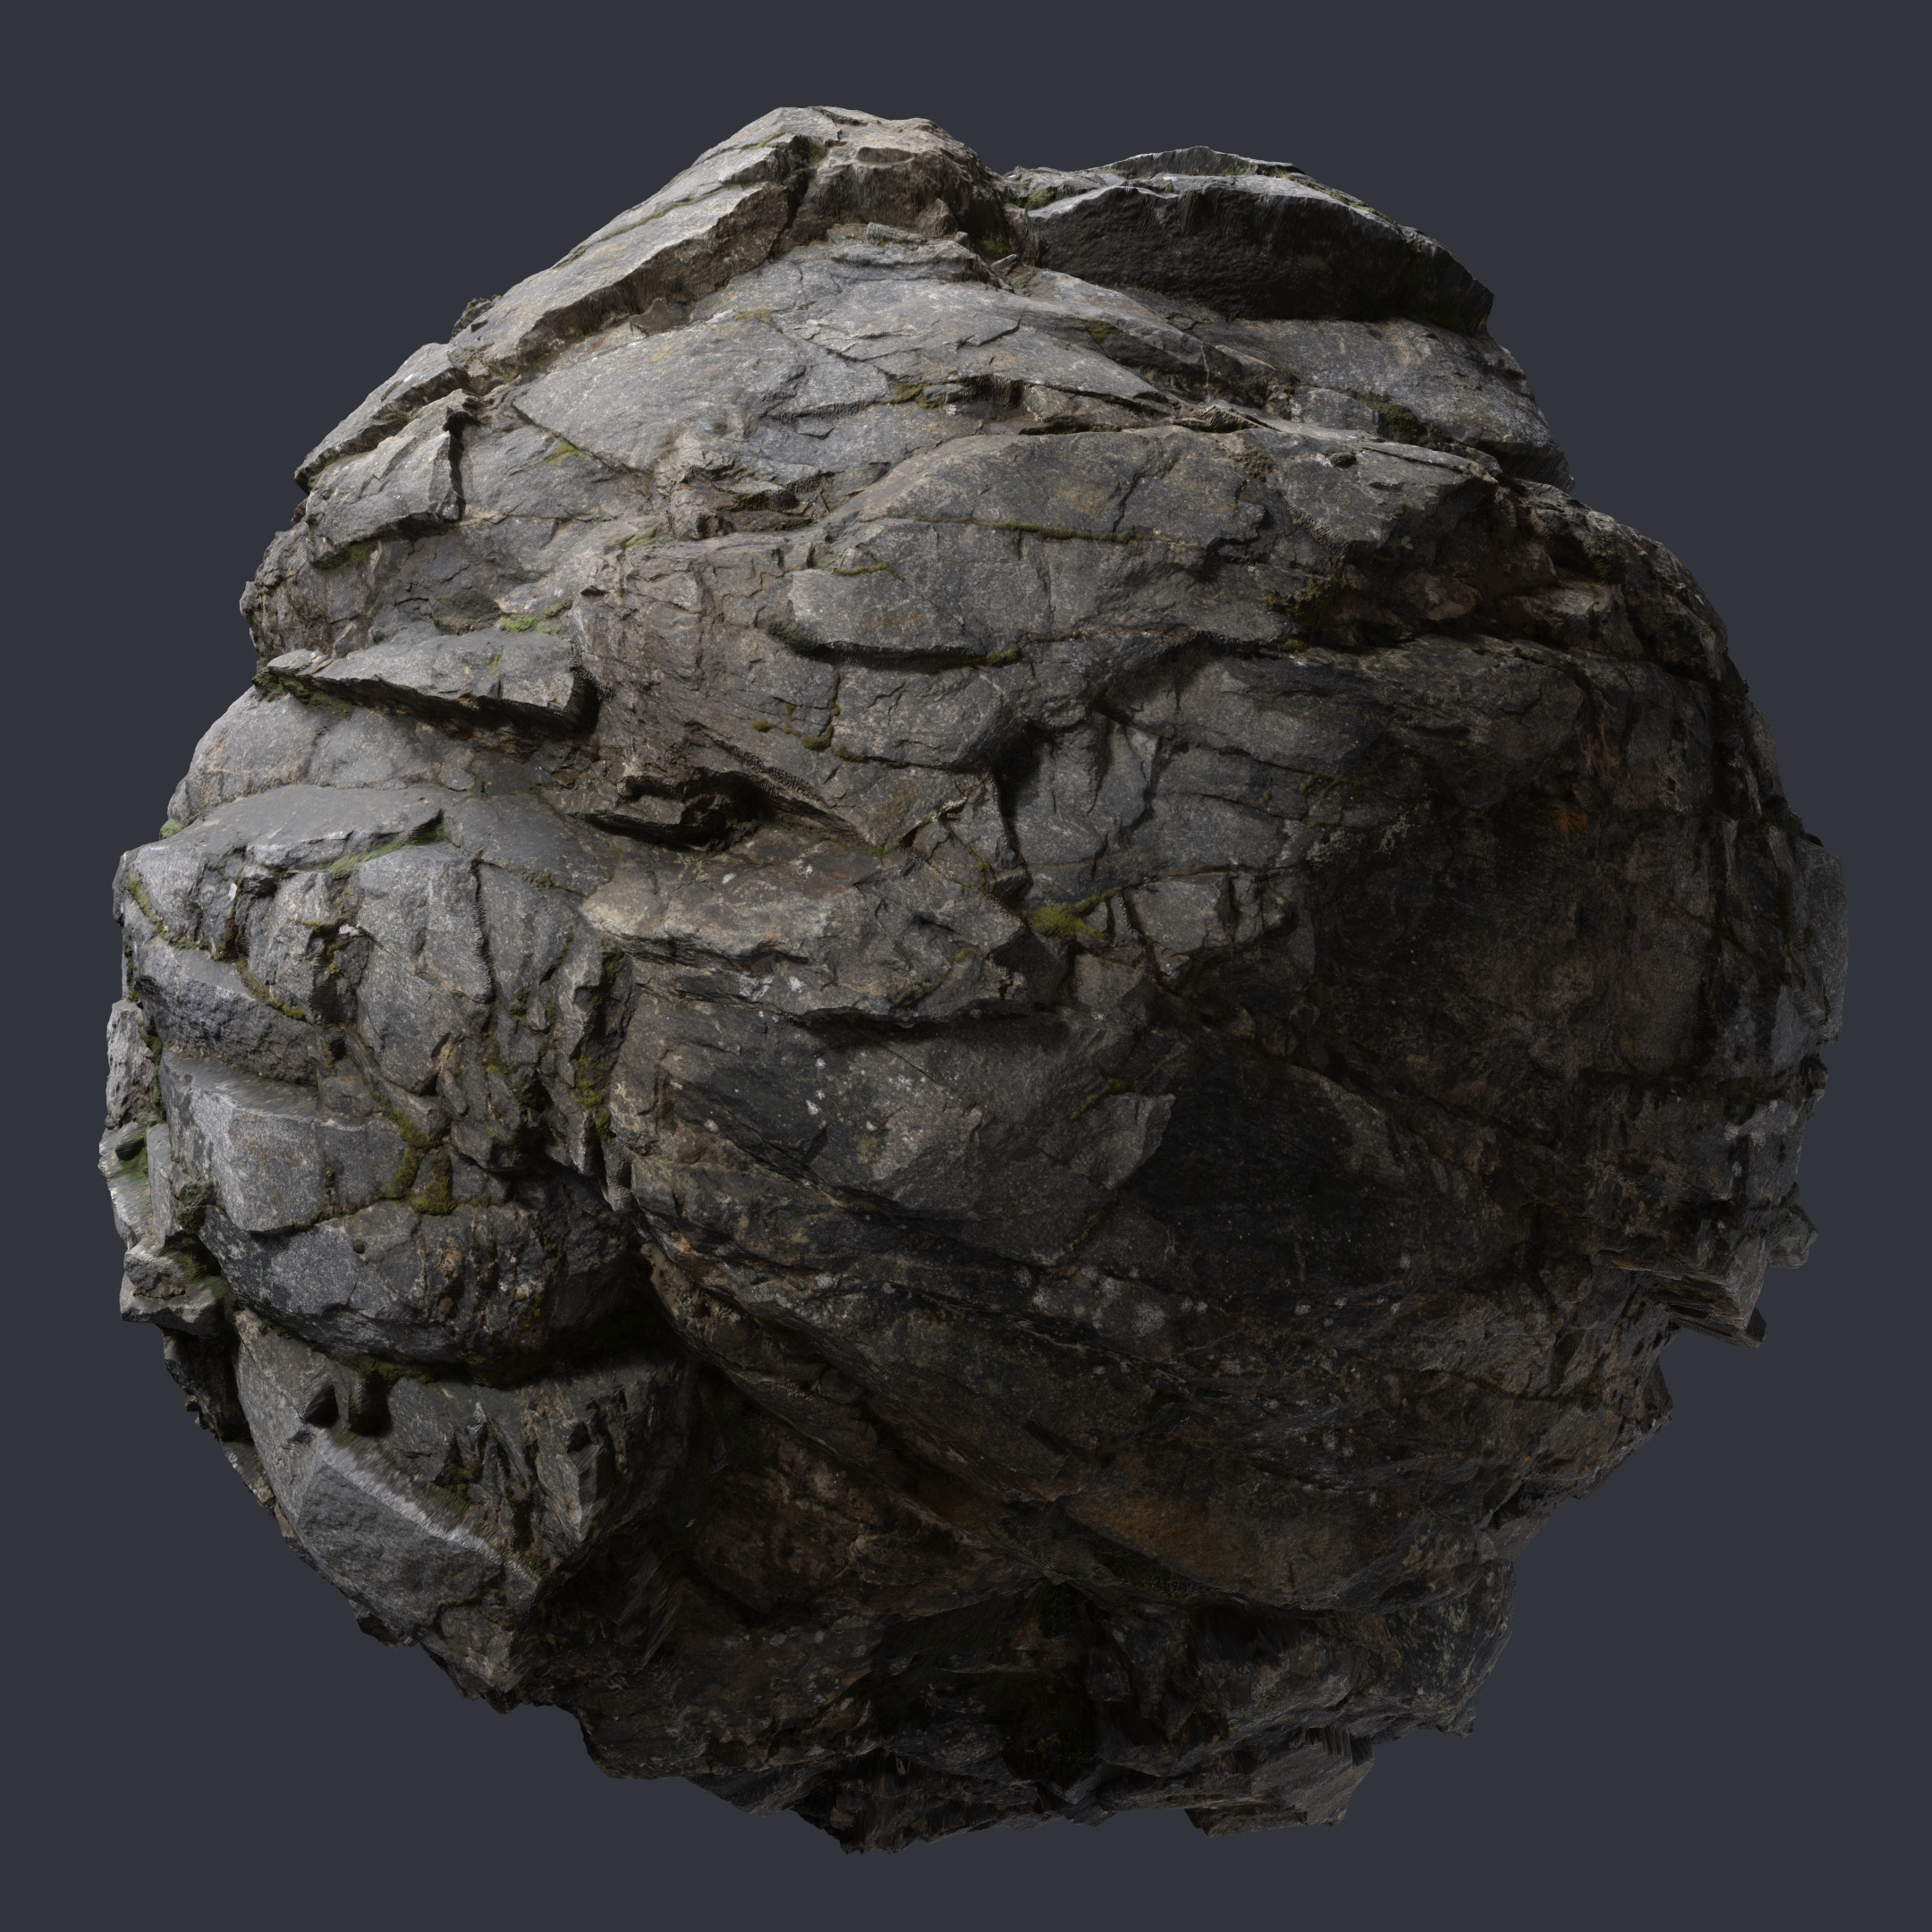 3d Scanned Cliff Rock 2x2 Meters